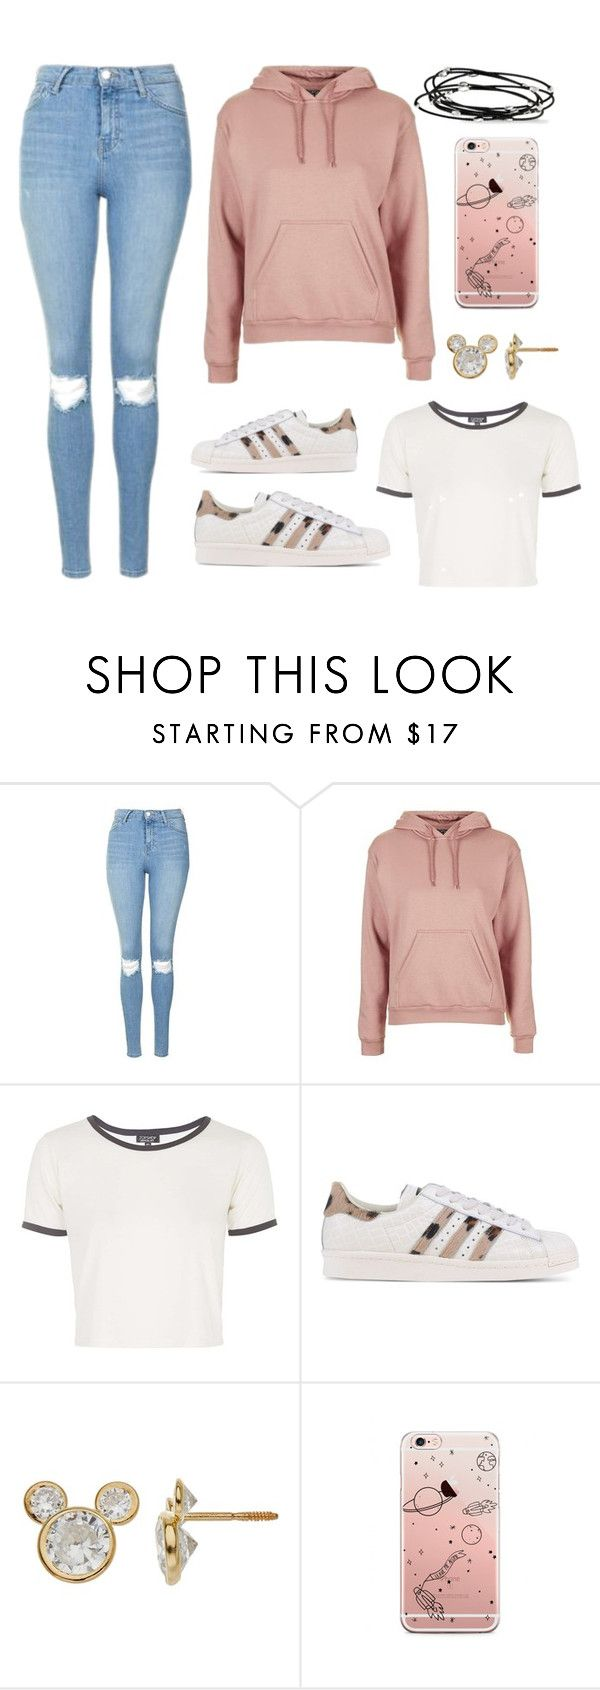 """Untitled #229"" by vixxtoxic ❤ liked on Polyvore featuring Topshop, adidas Originals, Disney and Kevin Jewelers"